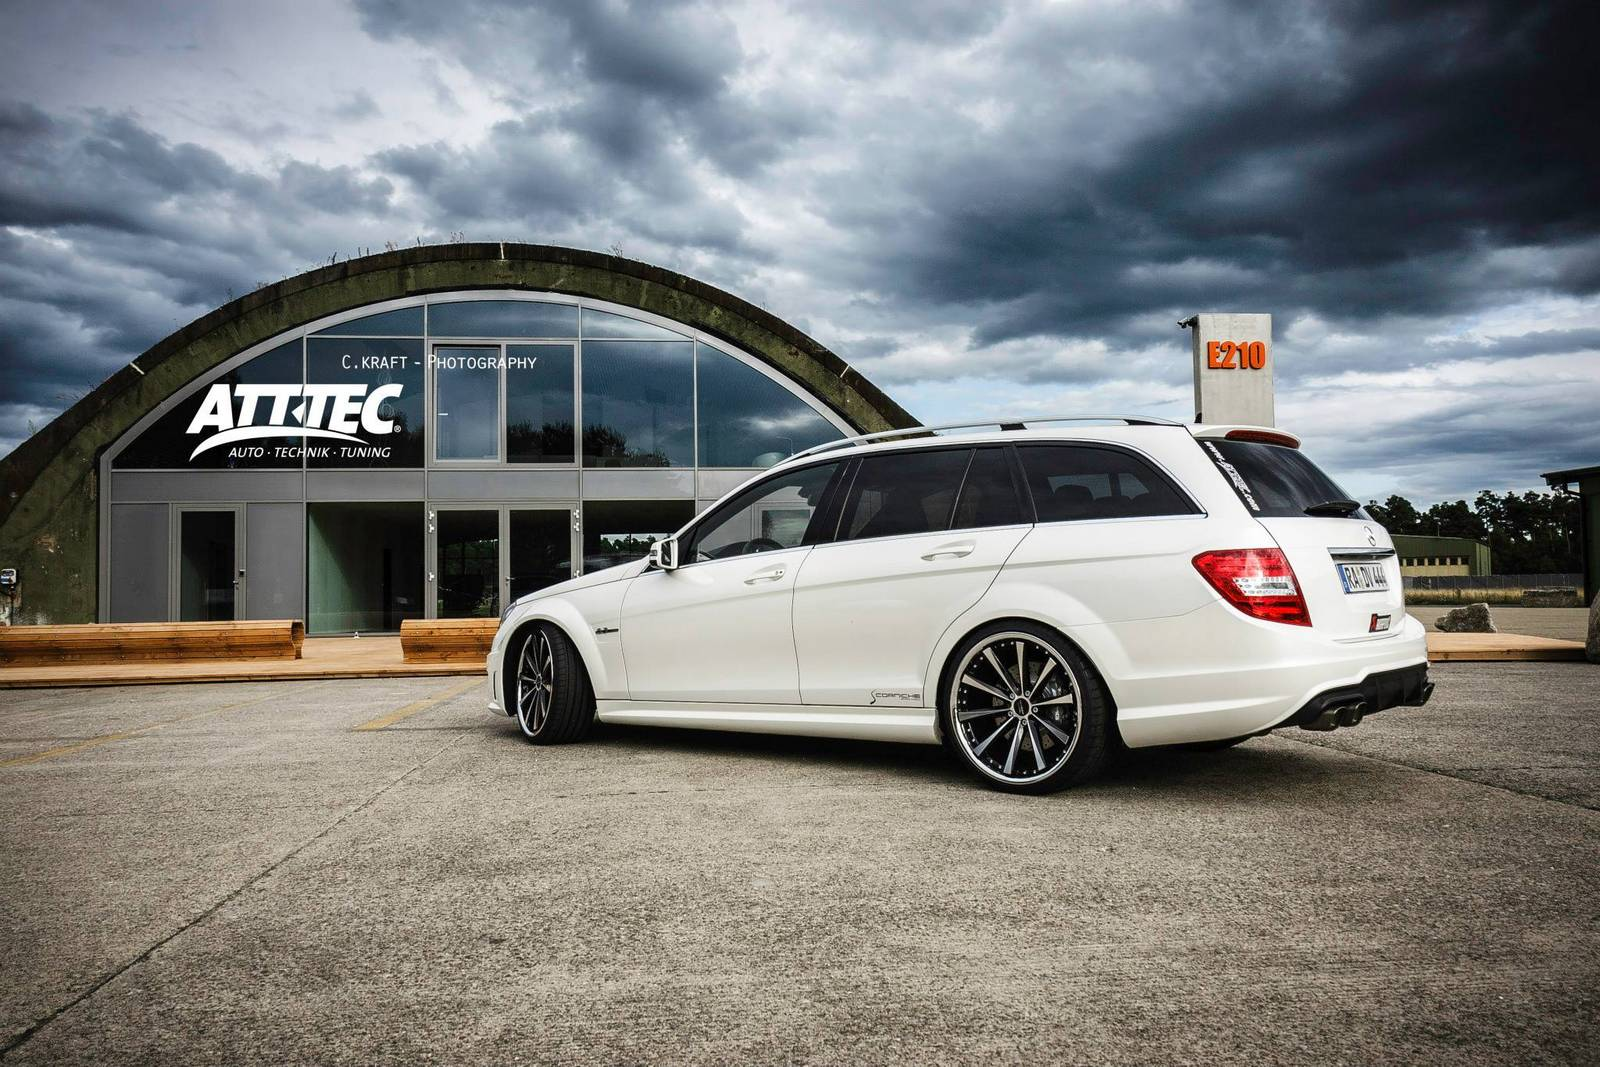 http://www.gtspirit.com/wp-content/gallery/mercedes-benz-c63-amg-estate/mercedes-benz-c63-amg-estate-4.jpg